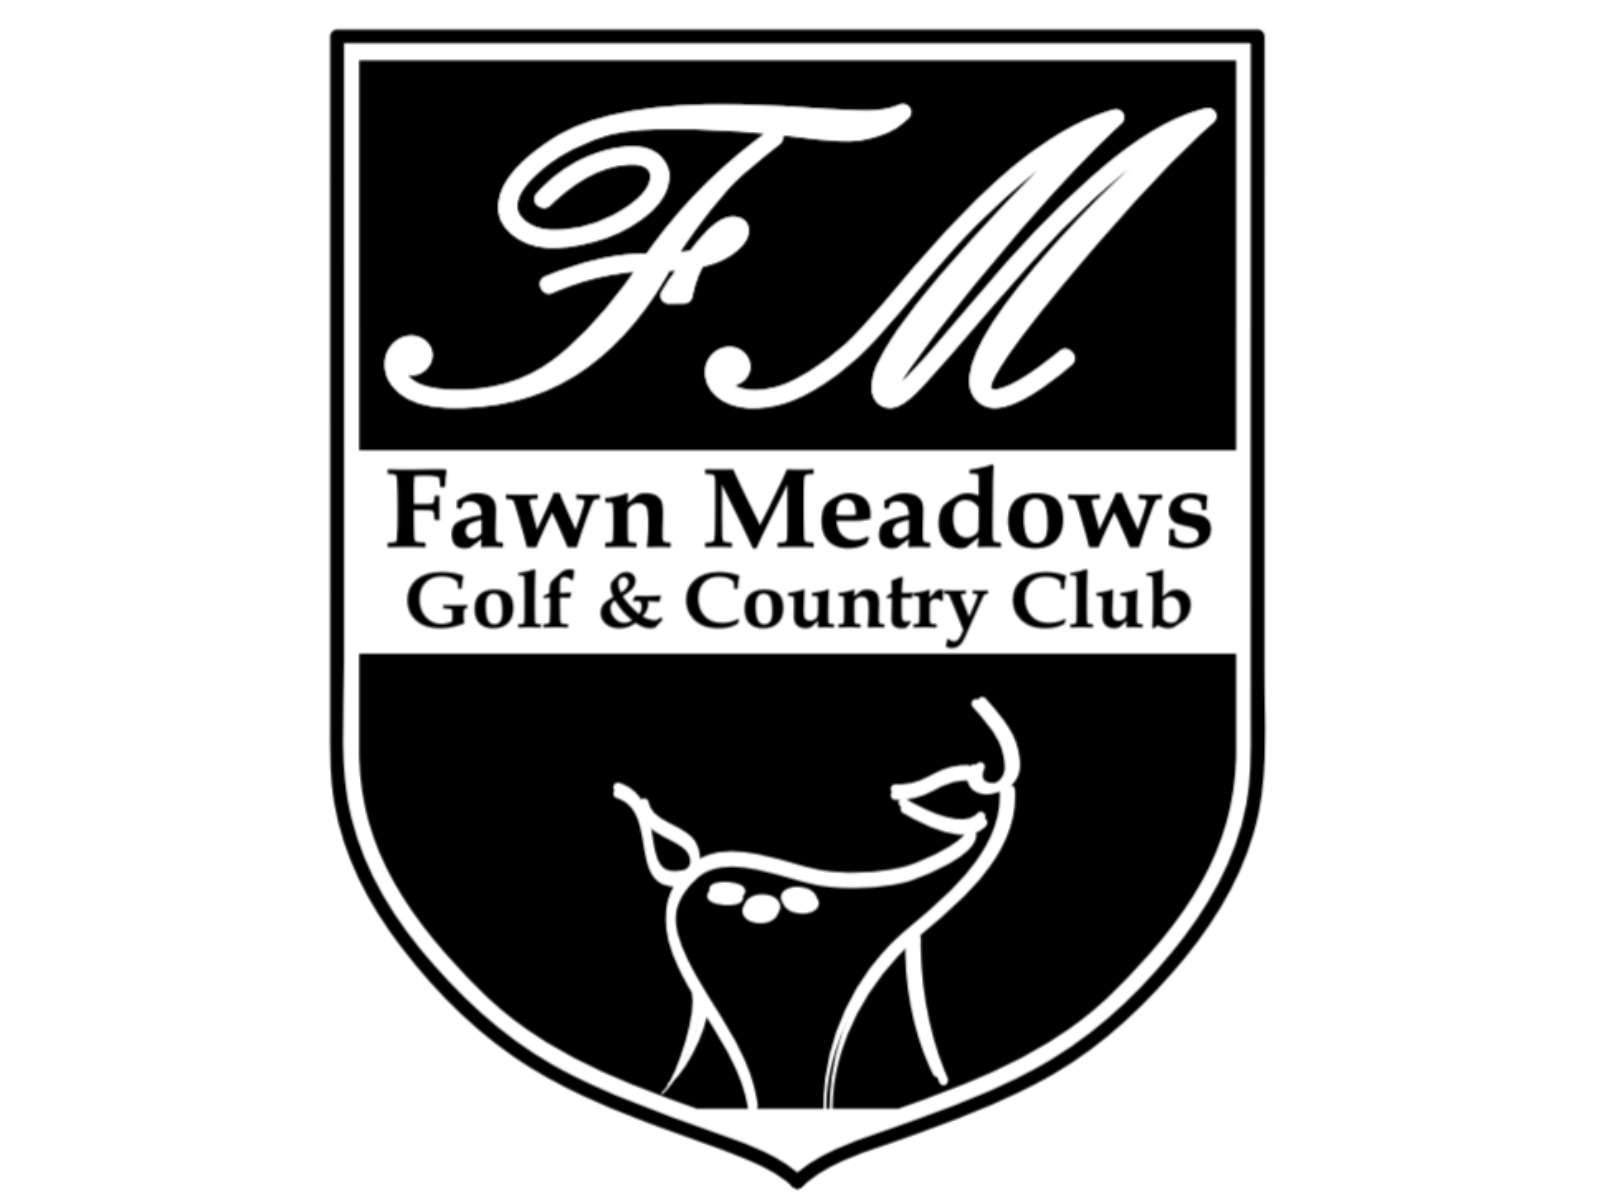 Fawn Meadows Golf and Country Club RV Resort